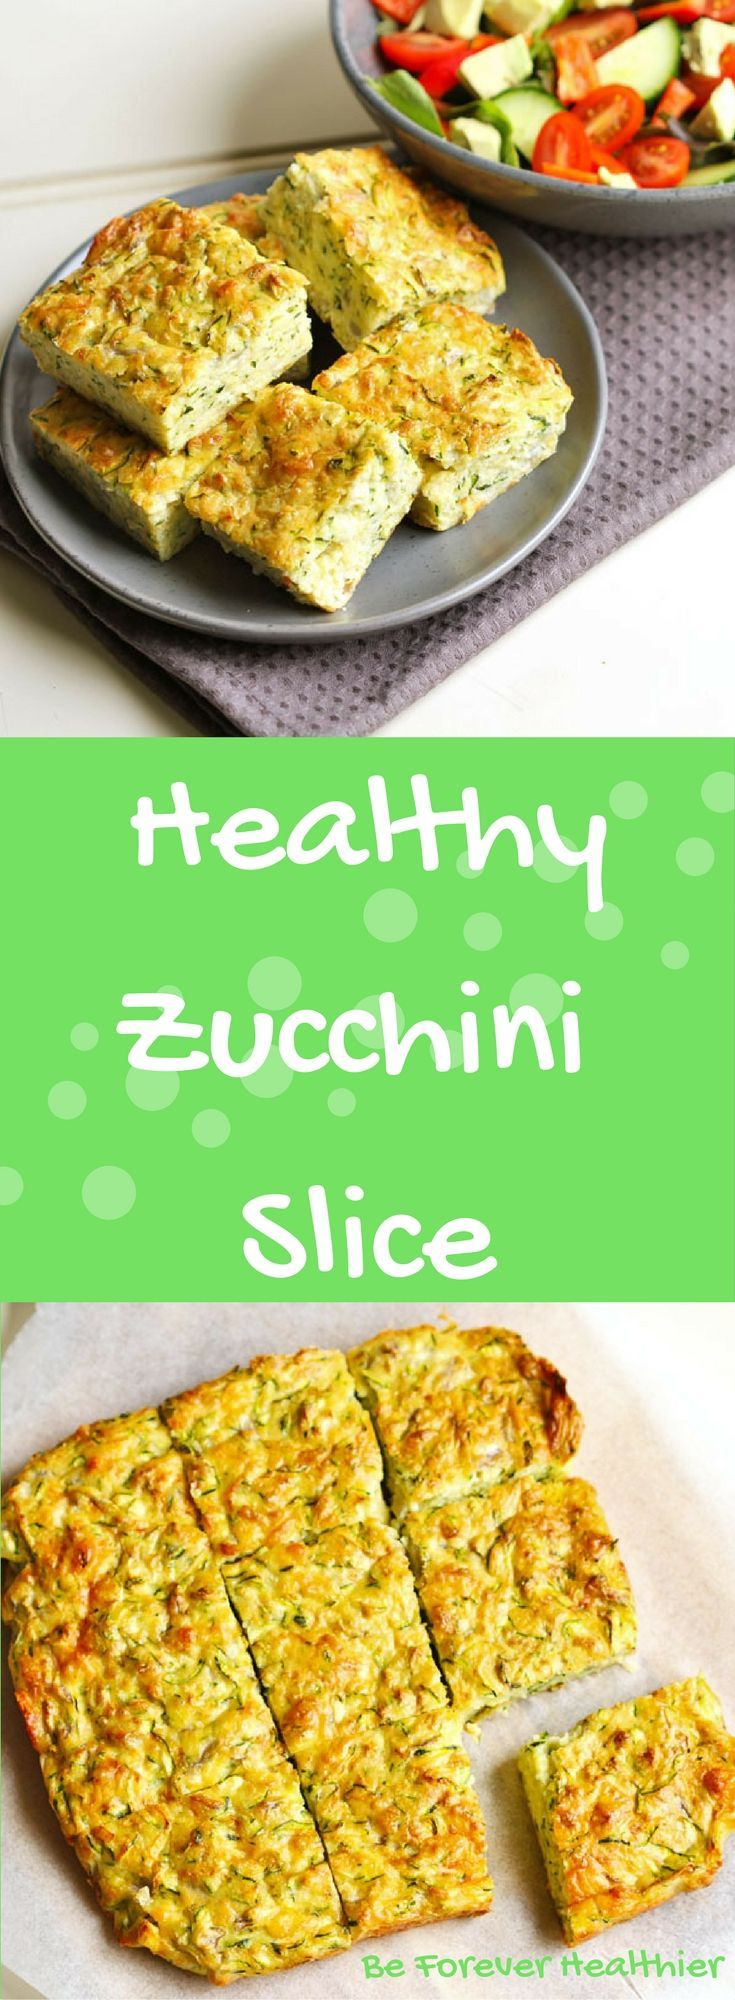 Healthy Zucchini Slice - Only 7 ingredients and 10 minutes to prep! Perfect for breakfast, lunch, dinner or a snack! YEP, that's right - this slice is perfect for ANY meal! #zucchinislice #vegetarian #mealprep